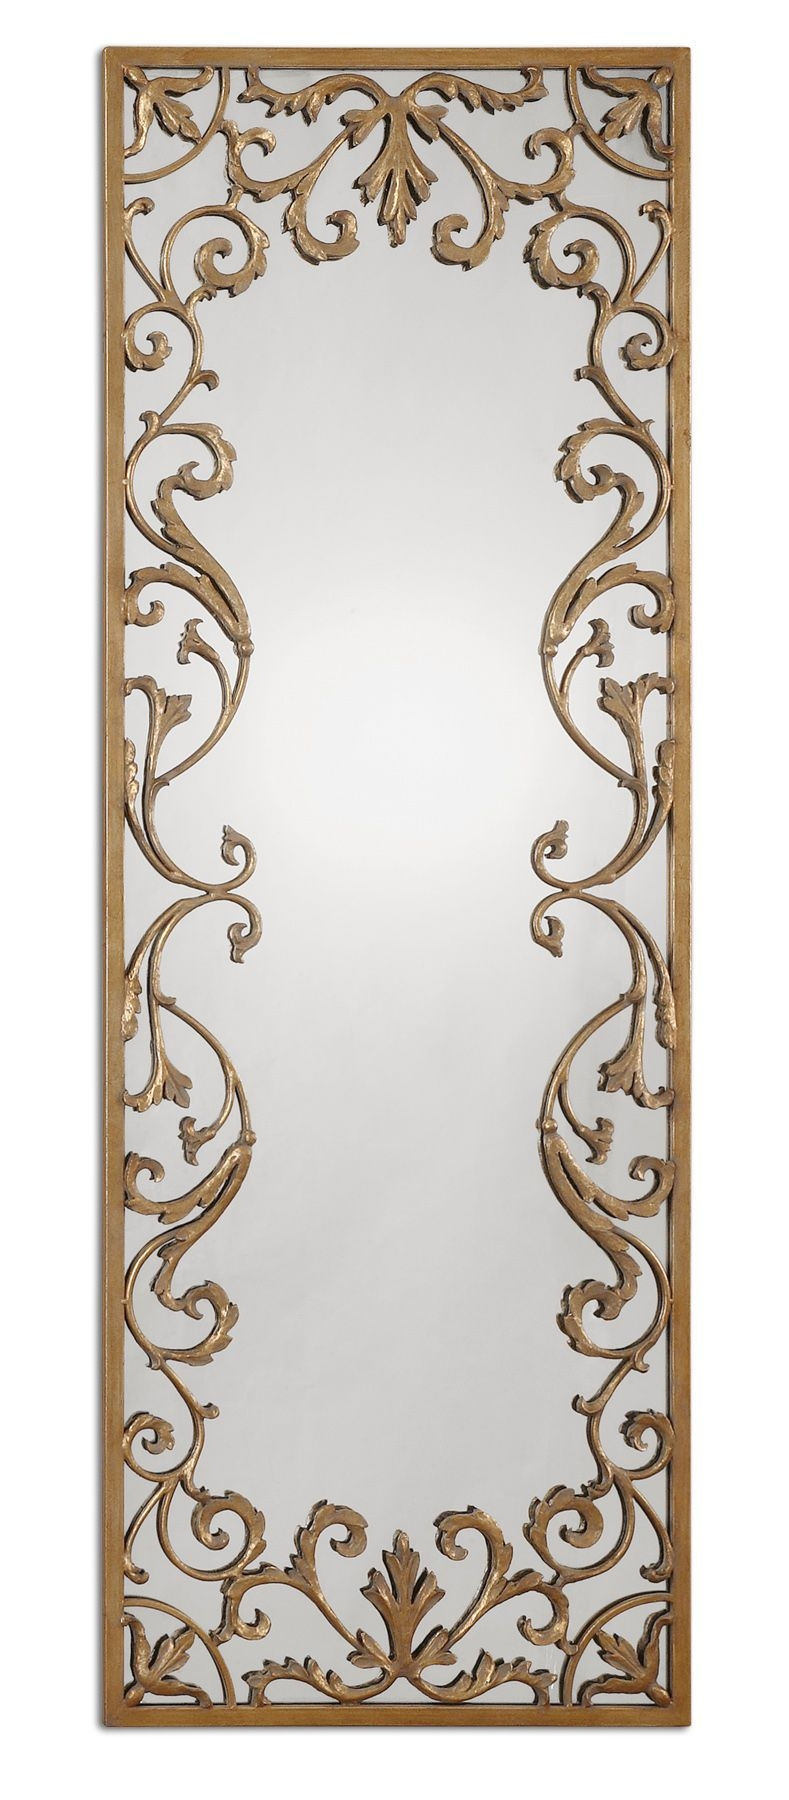 Apricena Decorative Gold Wall Mirror 68 X 245 Ebay For Long Gold Mirror (View 4 of 15)